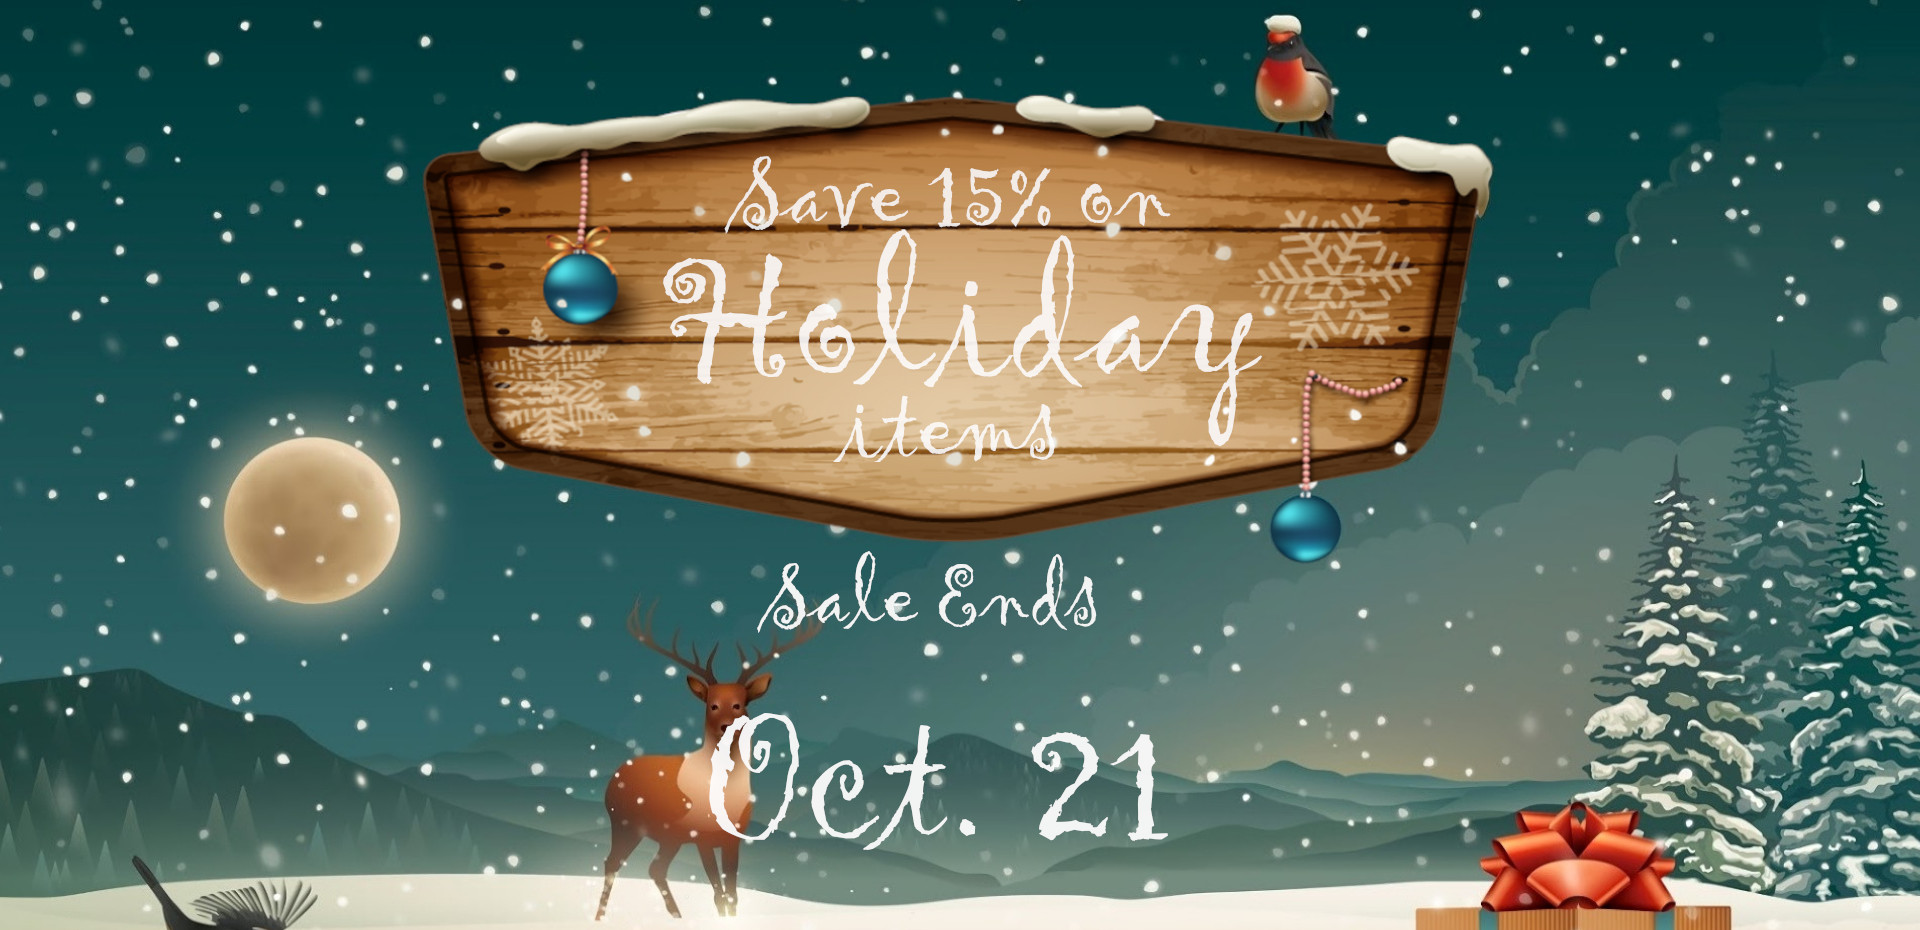 Christmas Farmhouse Decor on Sale - 15% Off